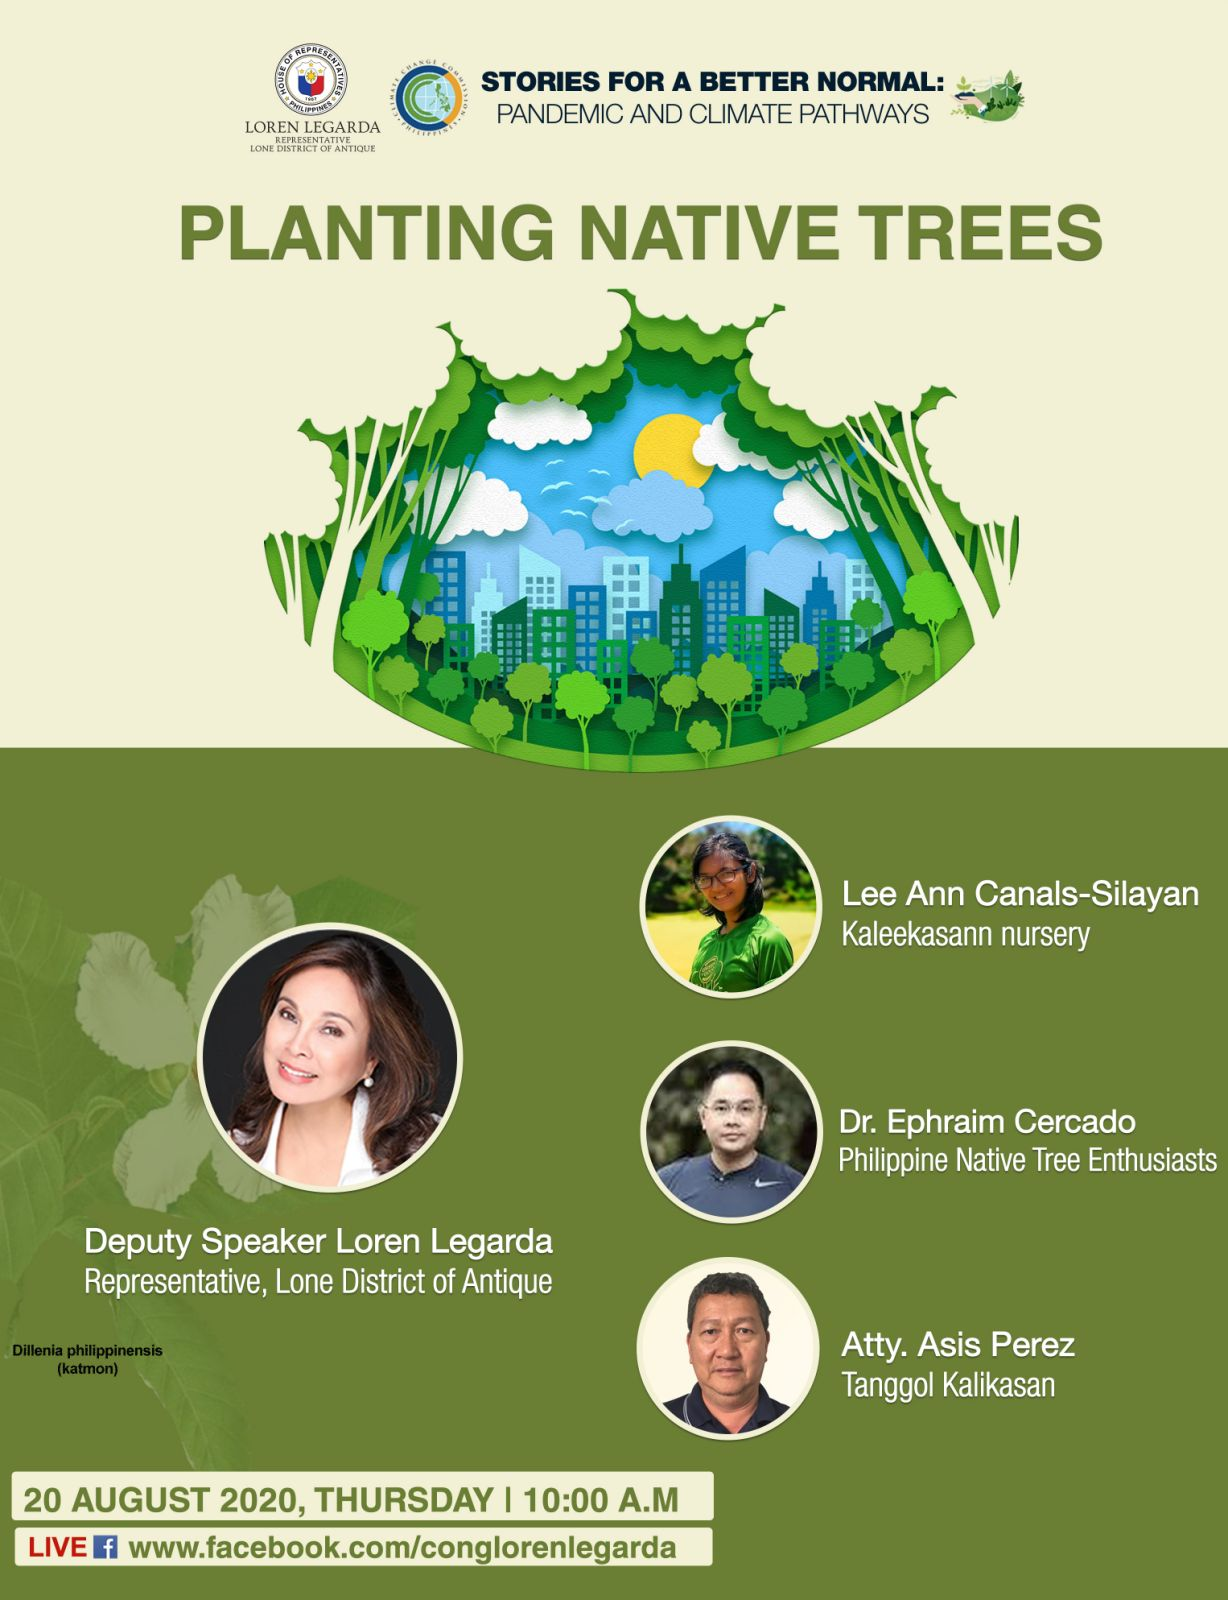 """Planting Native Trees in 14th Episode of """"Stories for a Better Normal"""" Series"""